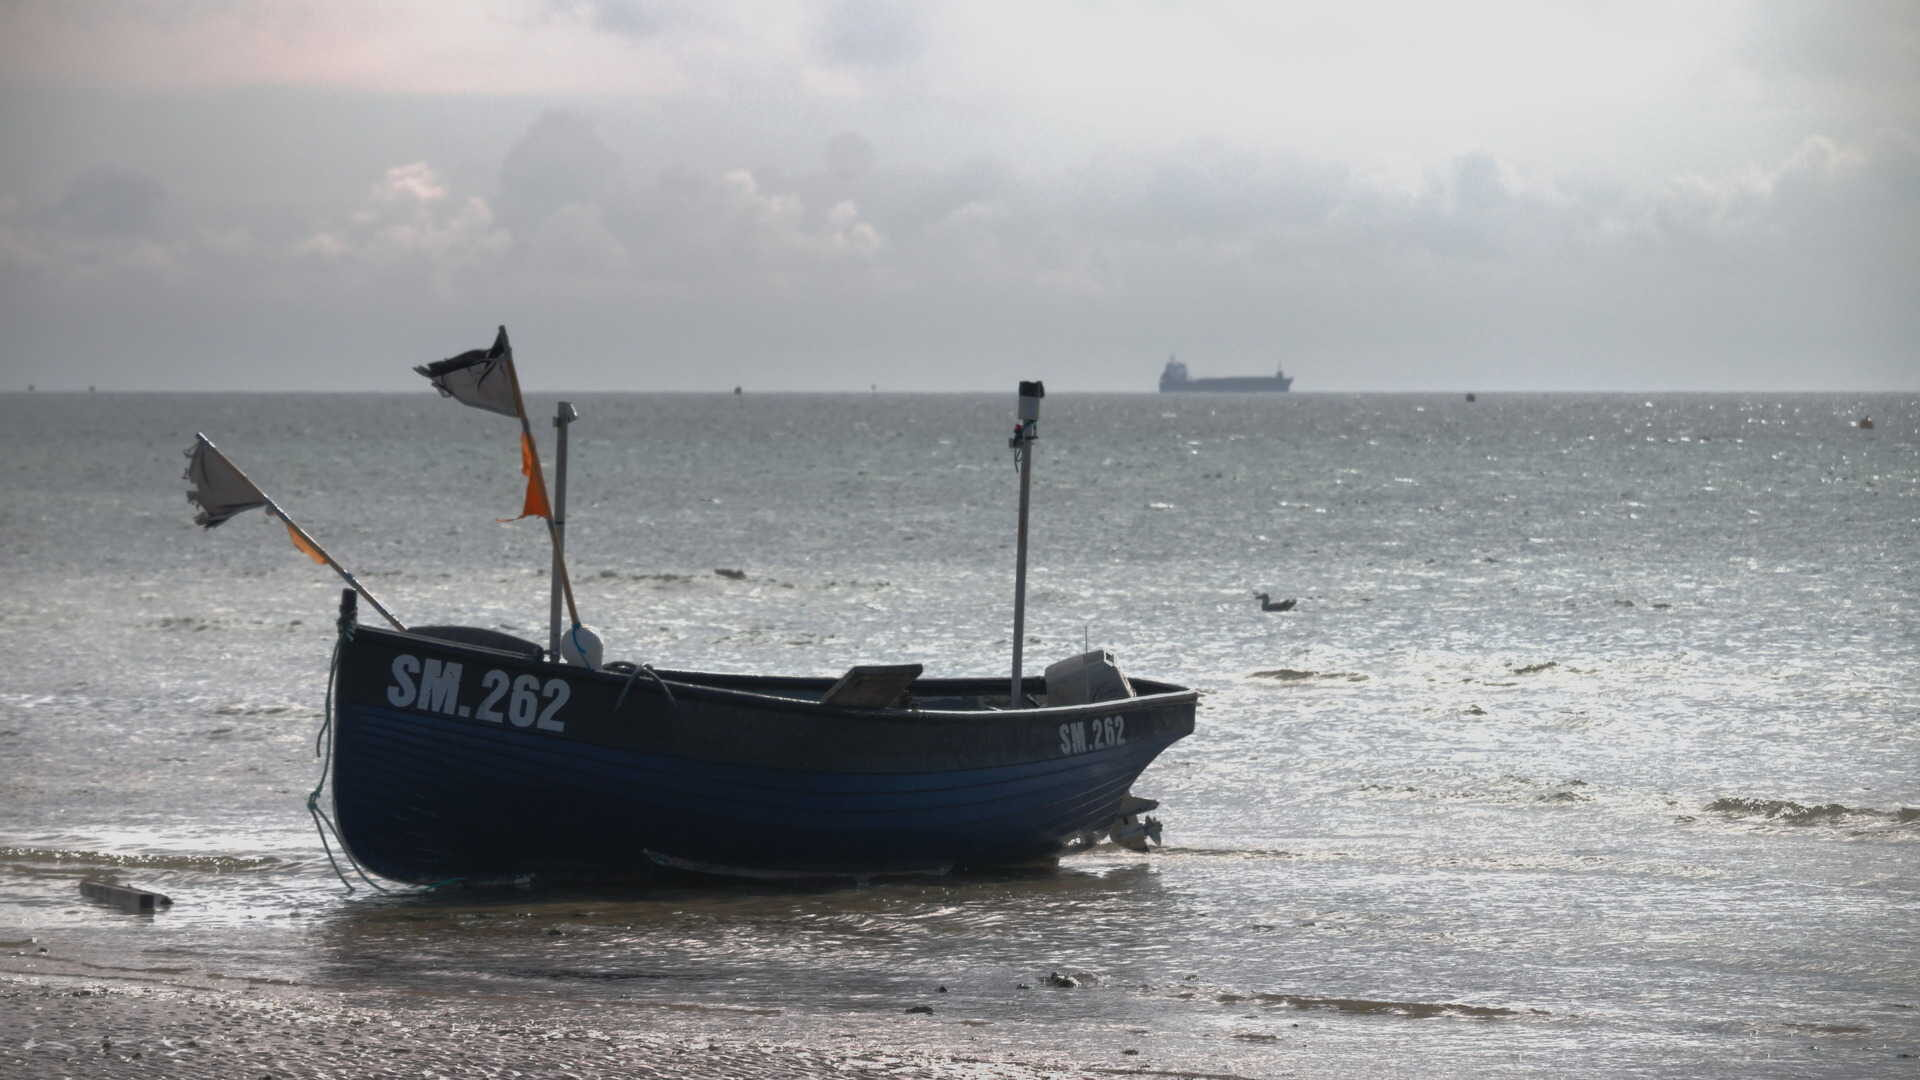 A small fishing boat called SM.262 with a large container ship in the distant background